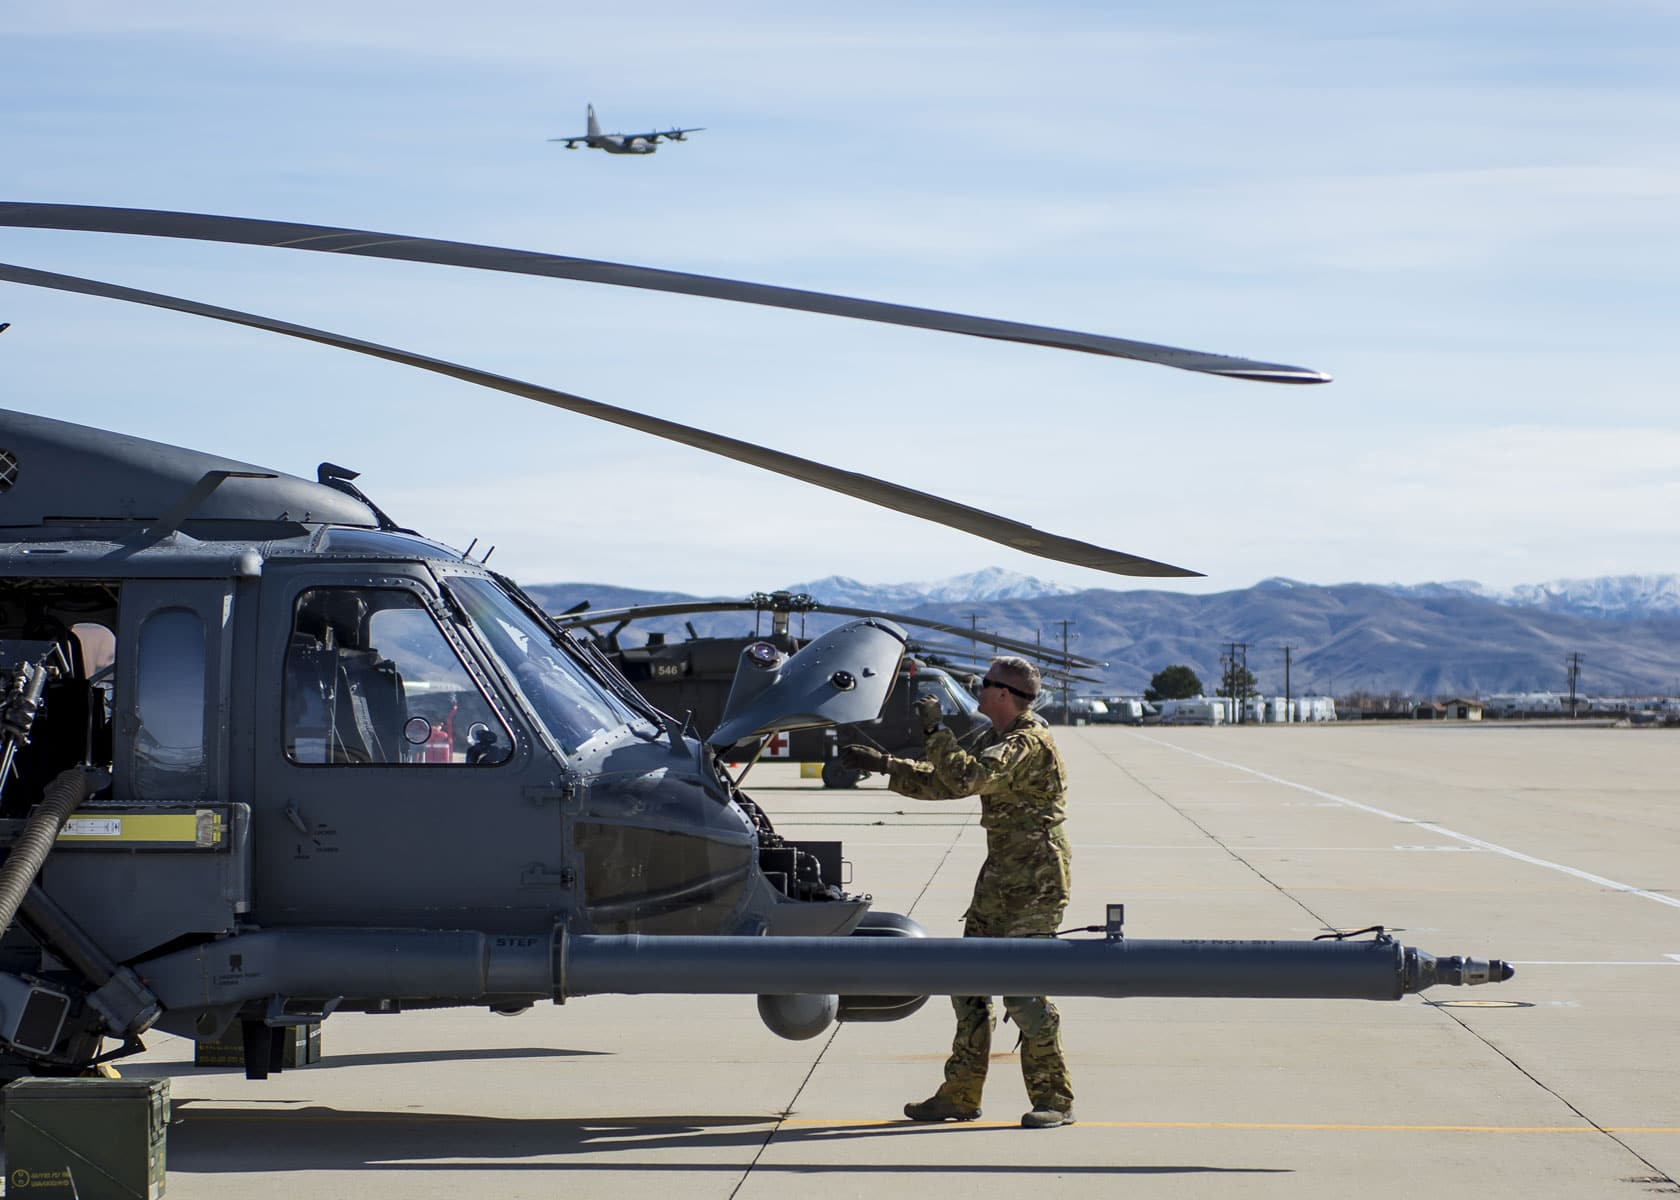 An Airman with the 943rd Rescue Group performs a pre-flight inspection on an HH-60G Pave Hawk helicopter as HC-130J Combat King II flies over head.